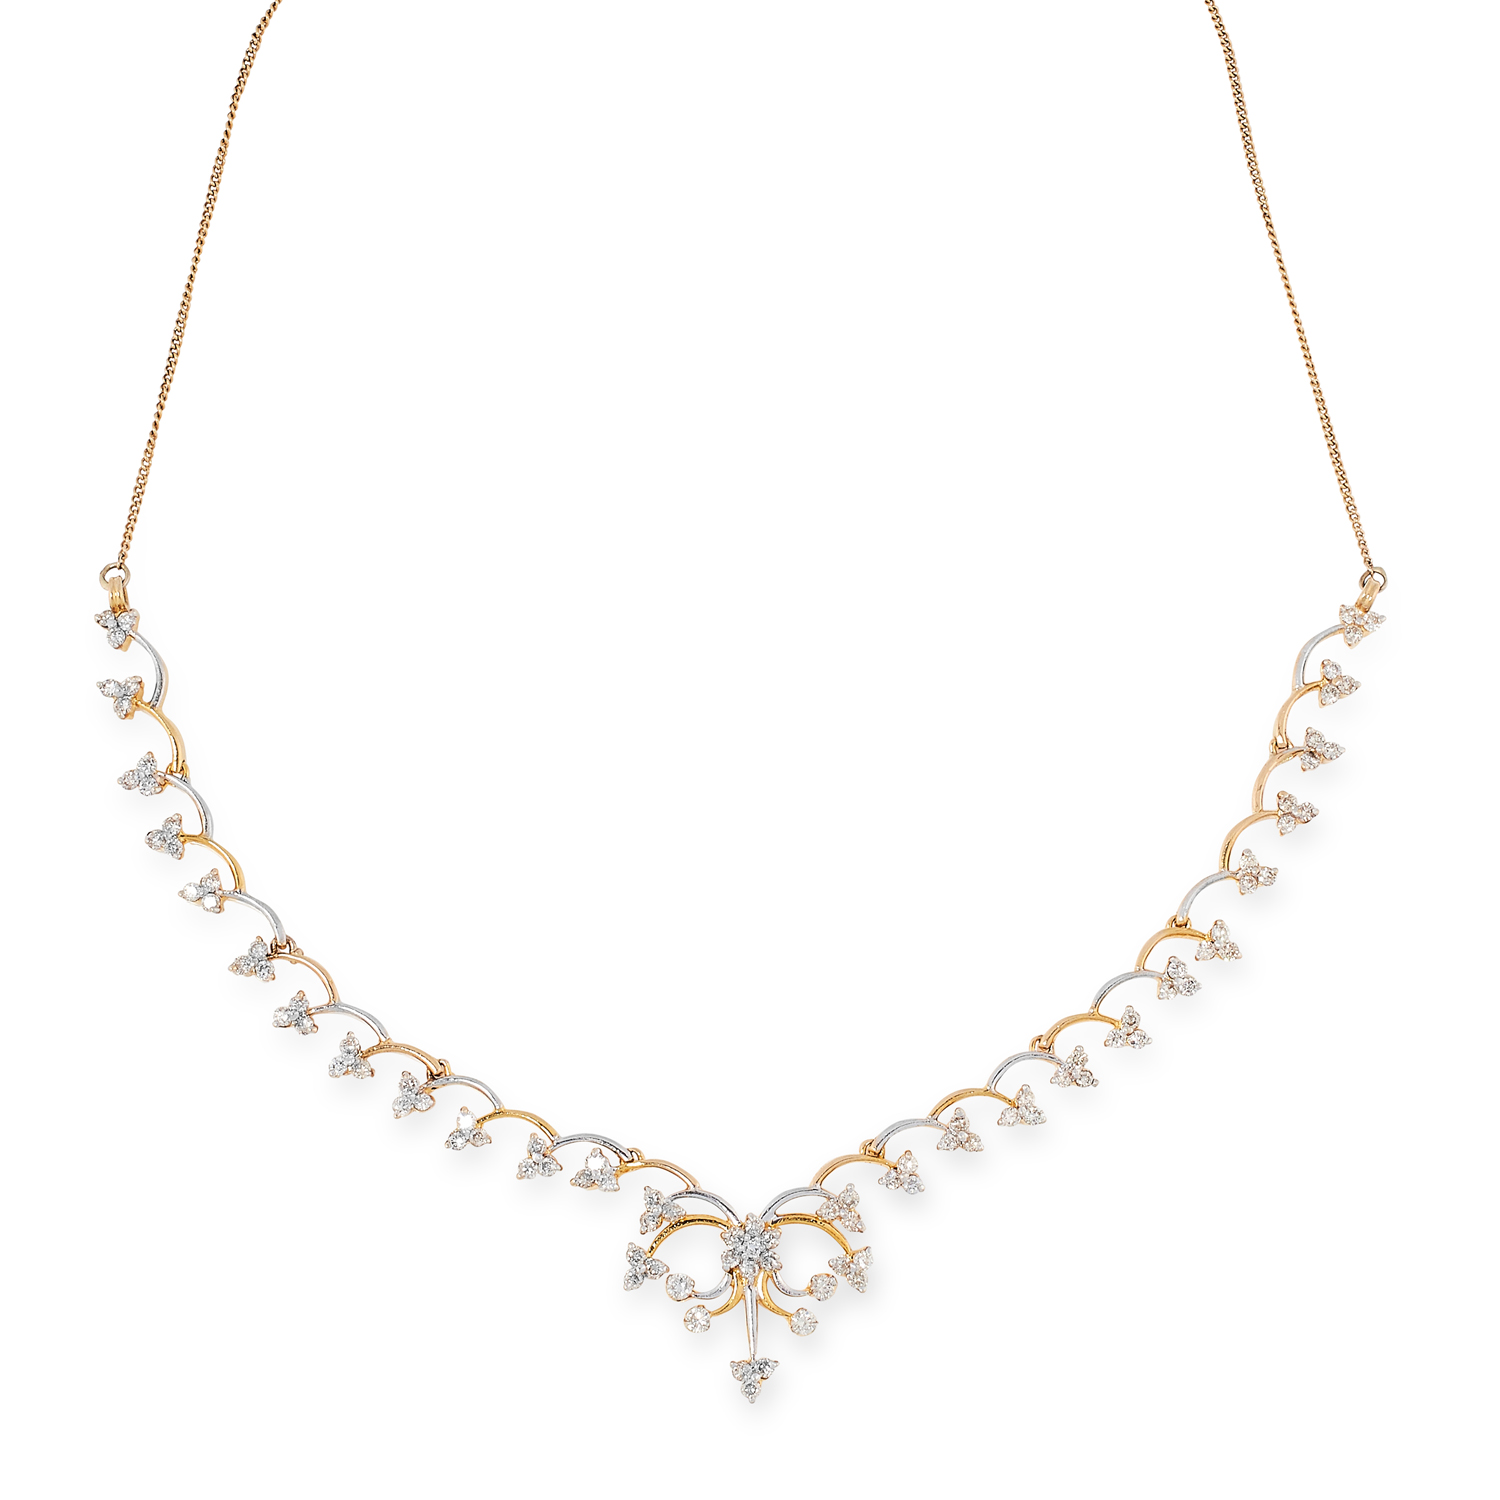 A DIAMOND NECKLACE in yellow and white gold, comprising of a half row of scroll links suspending